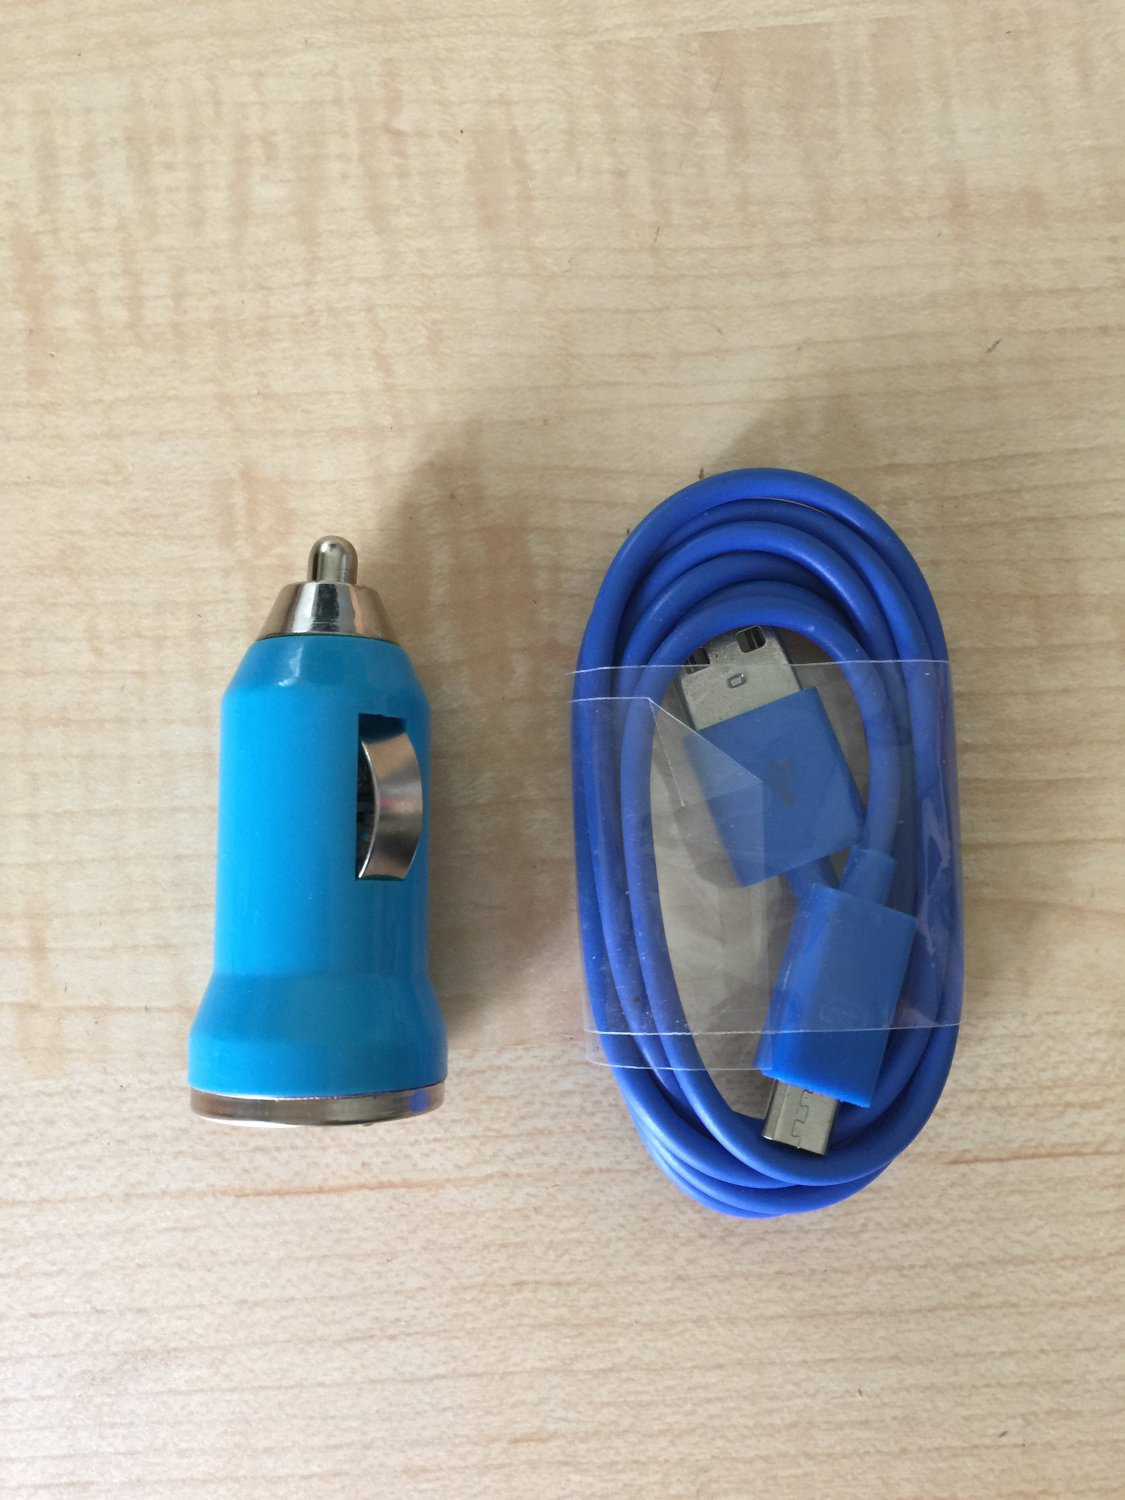 1 USB 6FT Sync Cable - 1 Car Charger for Android Cell Phone Blue Color